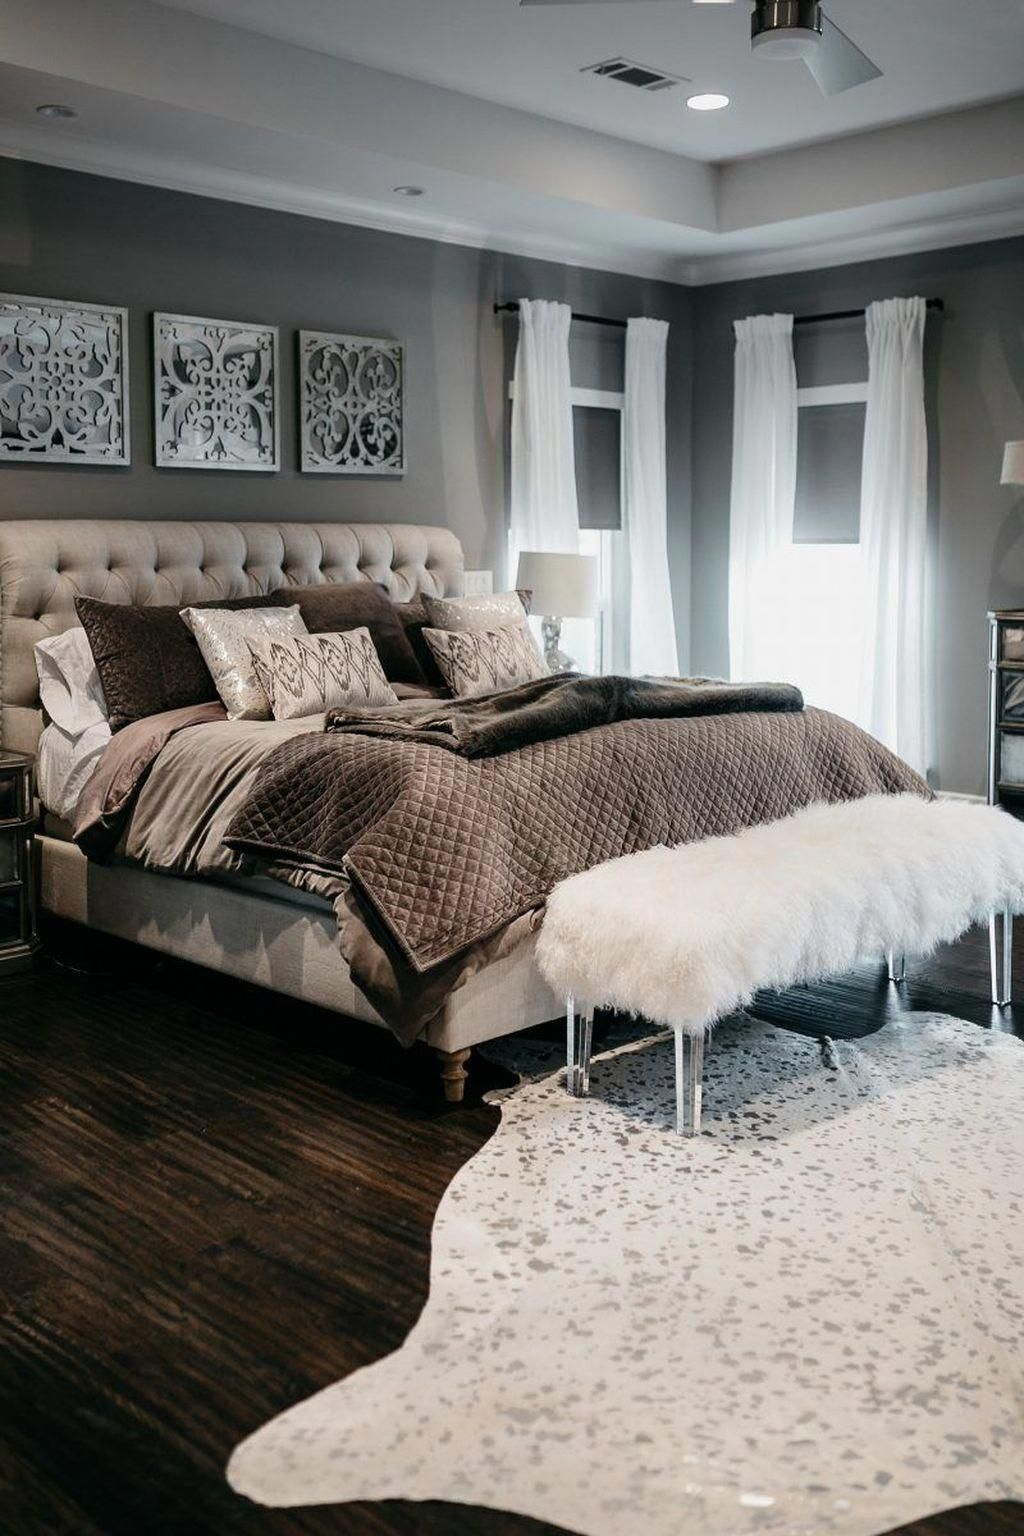 Platform Beds Are In Style The Oriental Look Is Among The Rage Design For Modern Furnishings Enthusiasts And Ap Hauptschlafzimmer Wohnung Schlafzimmer Deko